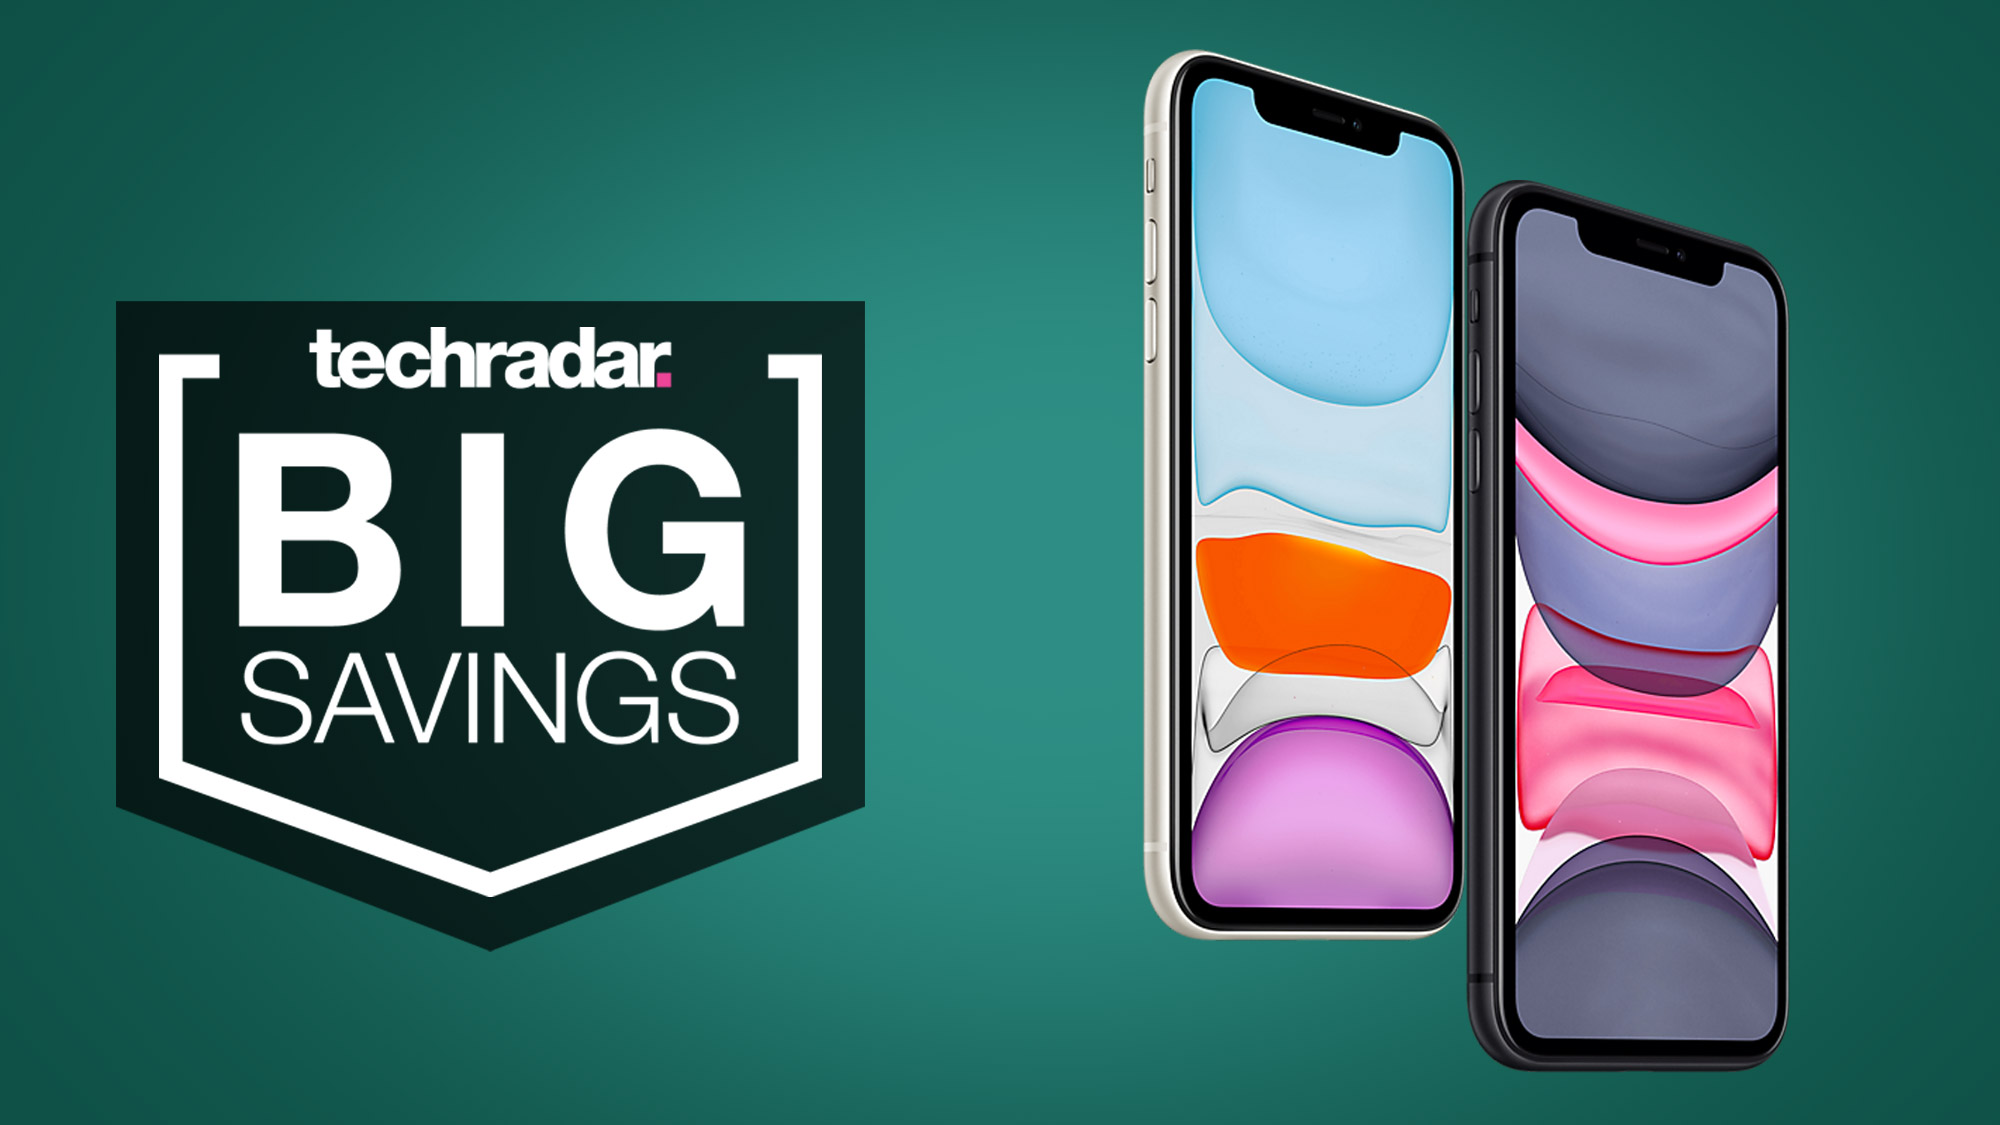 Get these EE iPhone XR and iPhone 11 deals without any upfront costs